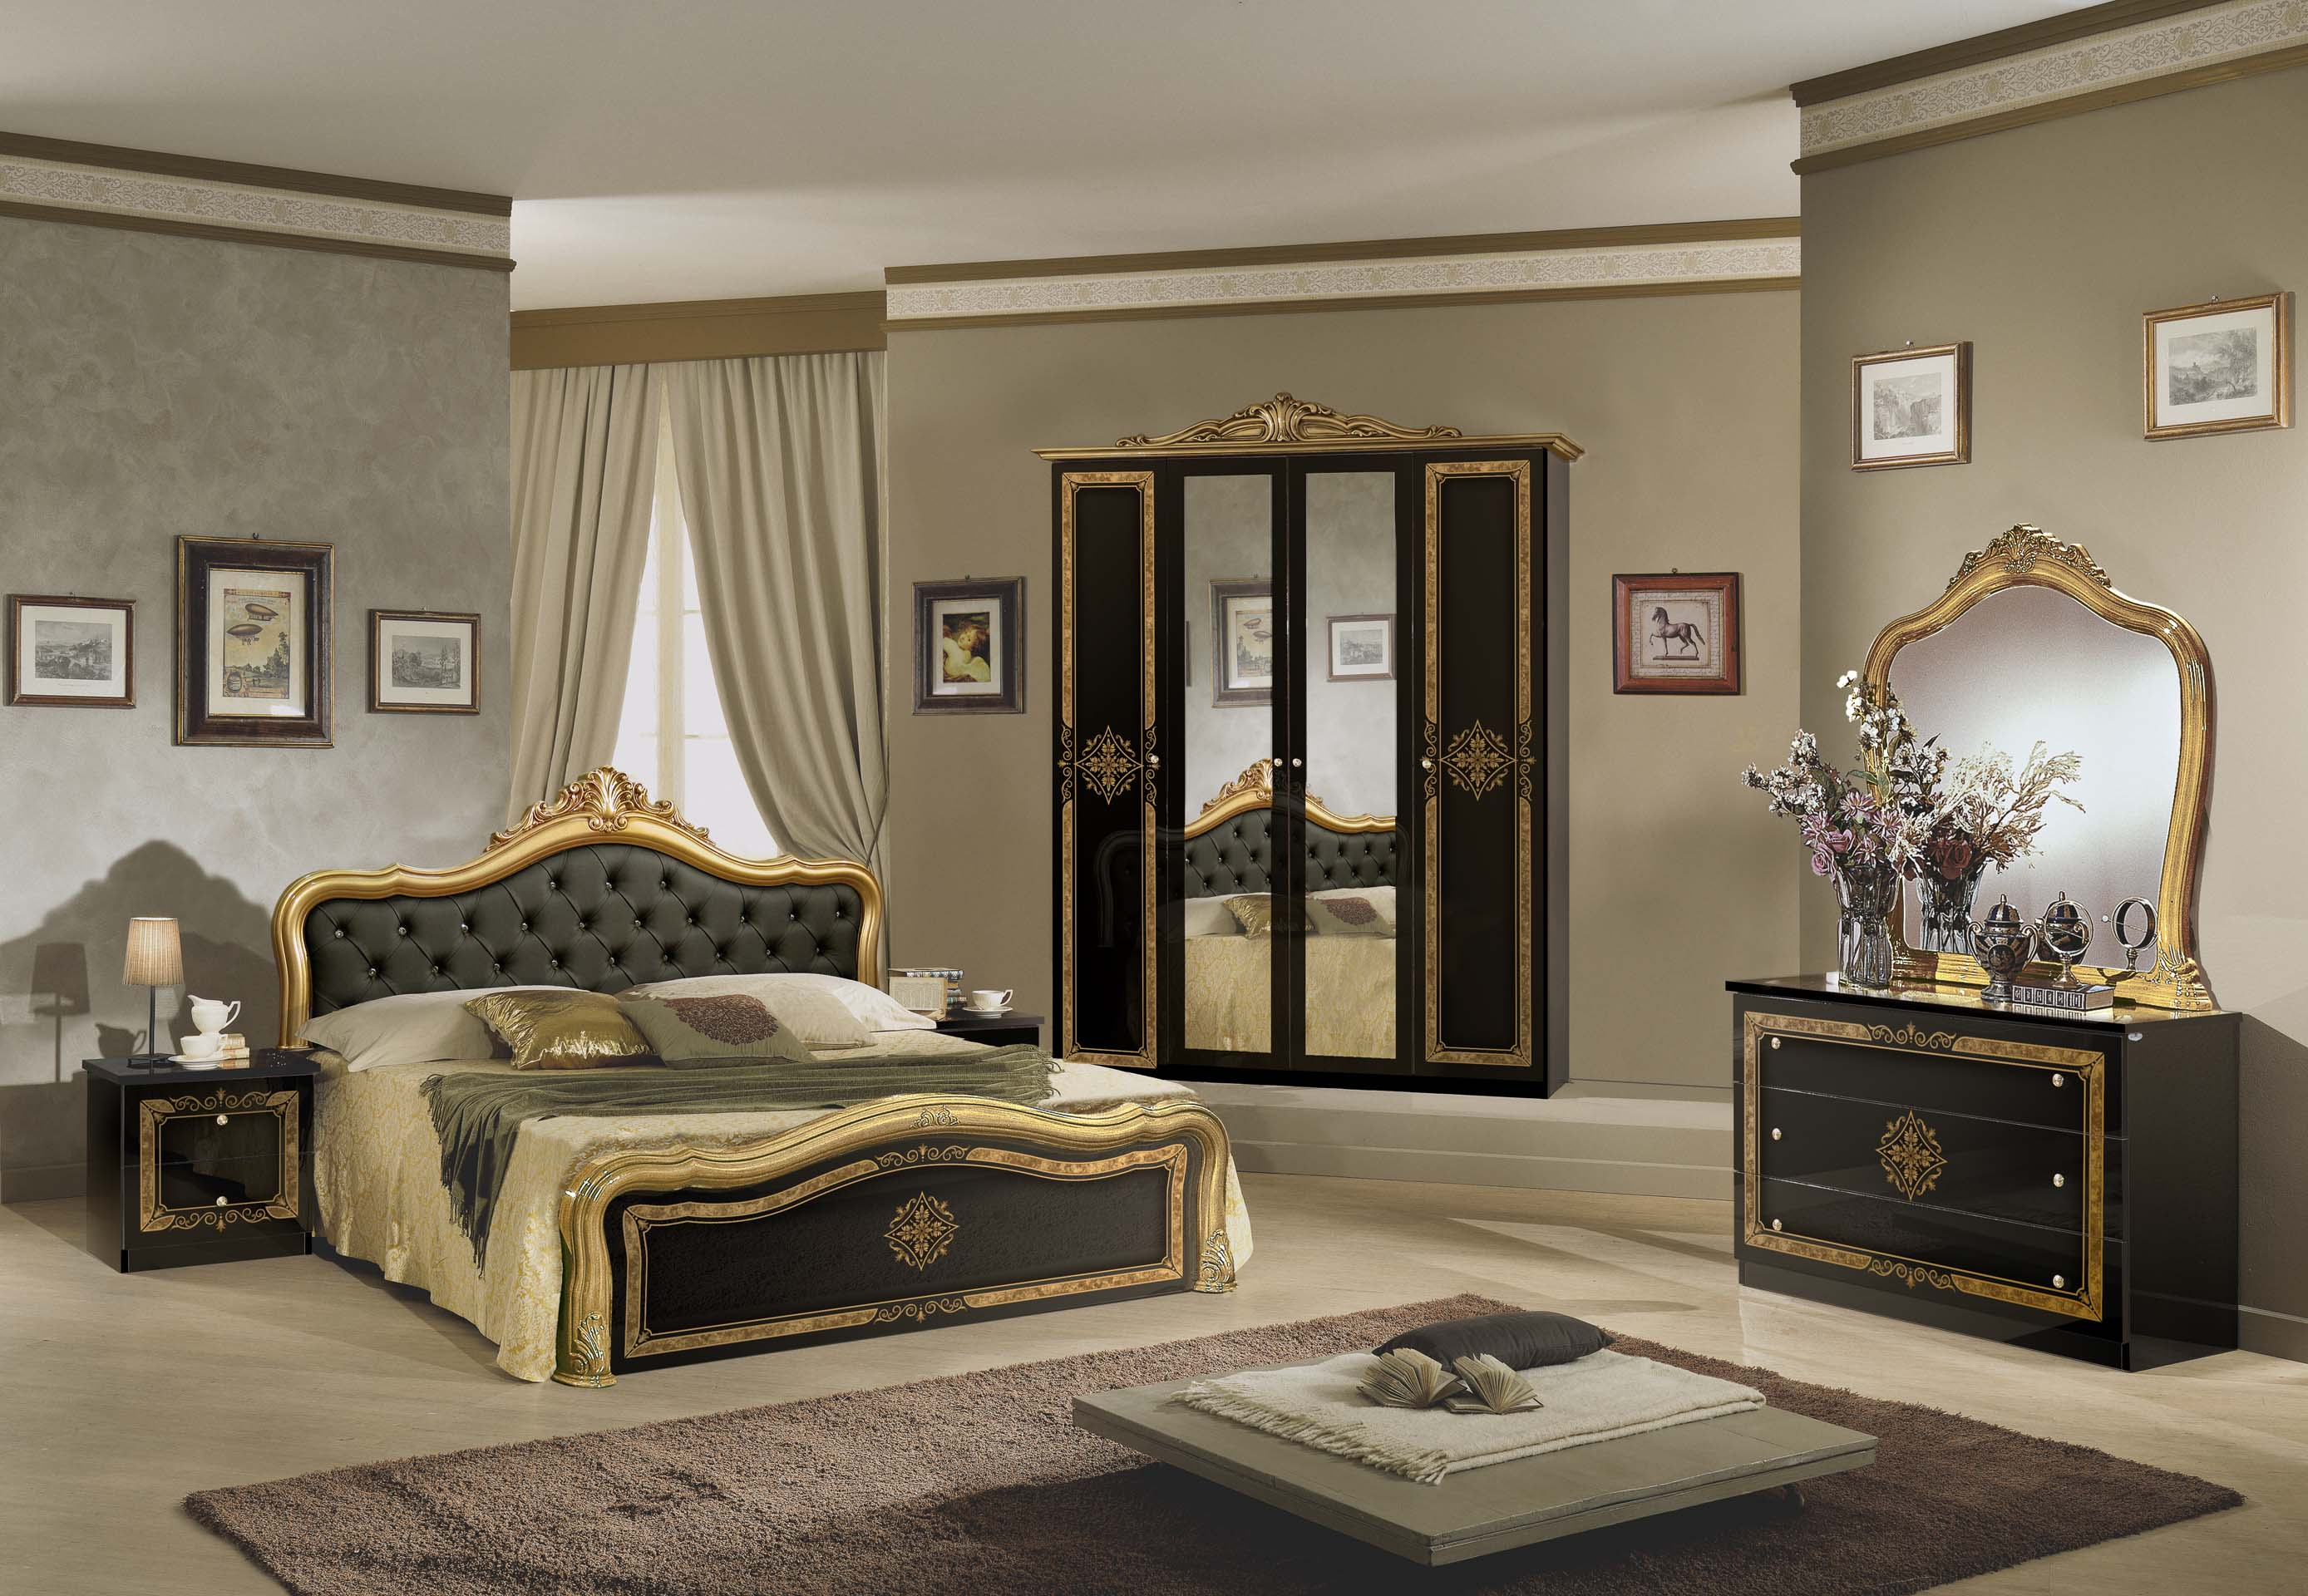 kommode lucy mit spiegel schwarz silber f r schlafzimmer. Black Bedroom Furniture Sets. Home Design Ideas